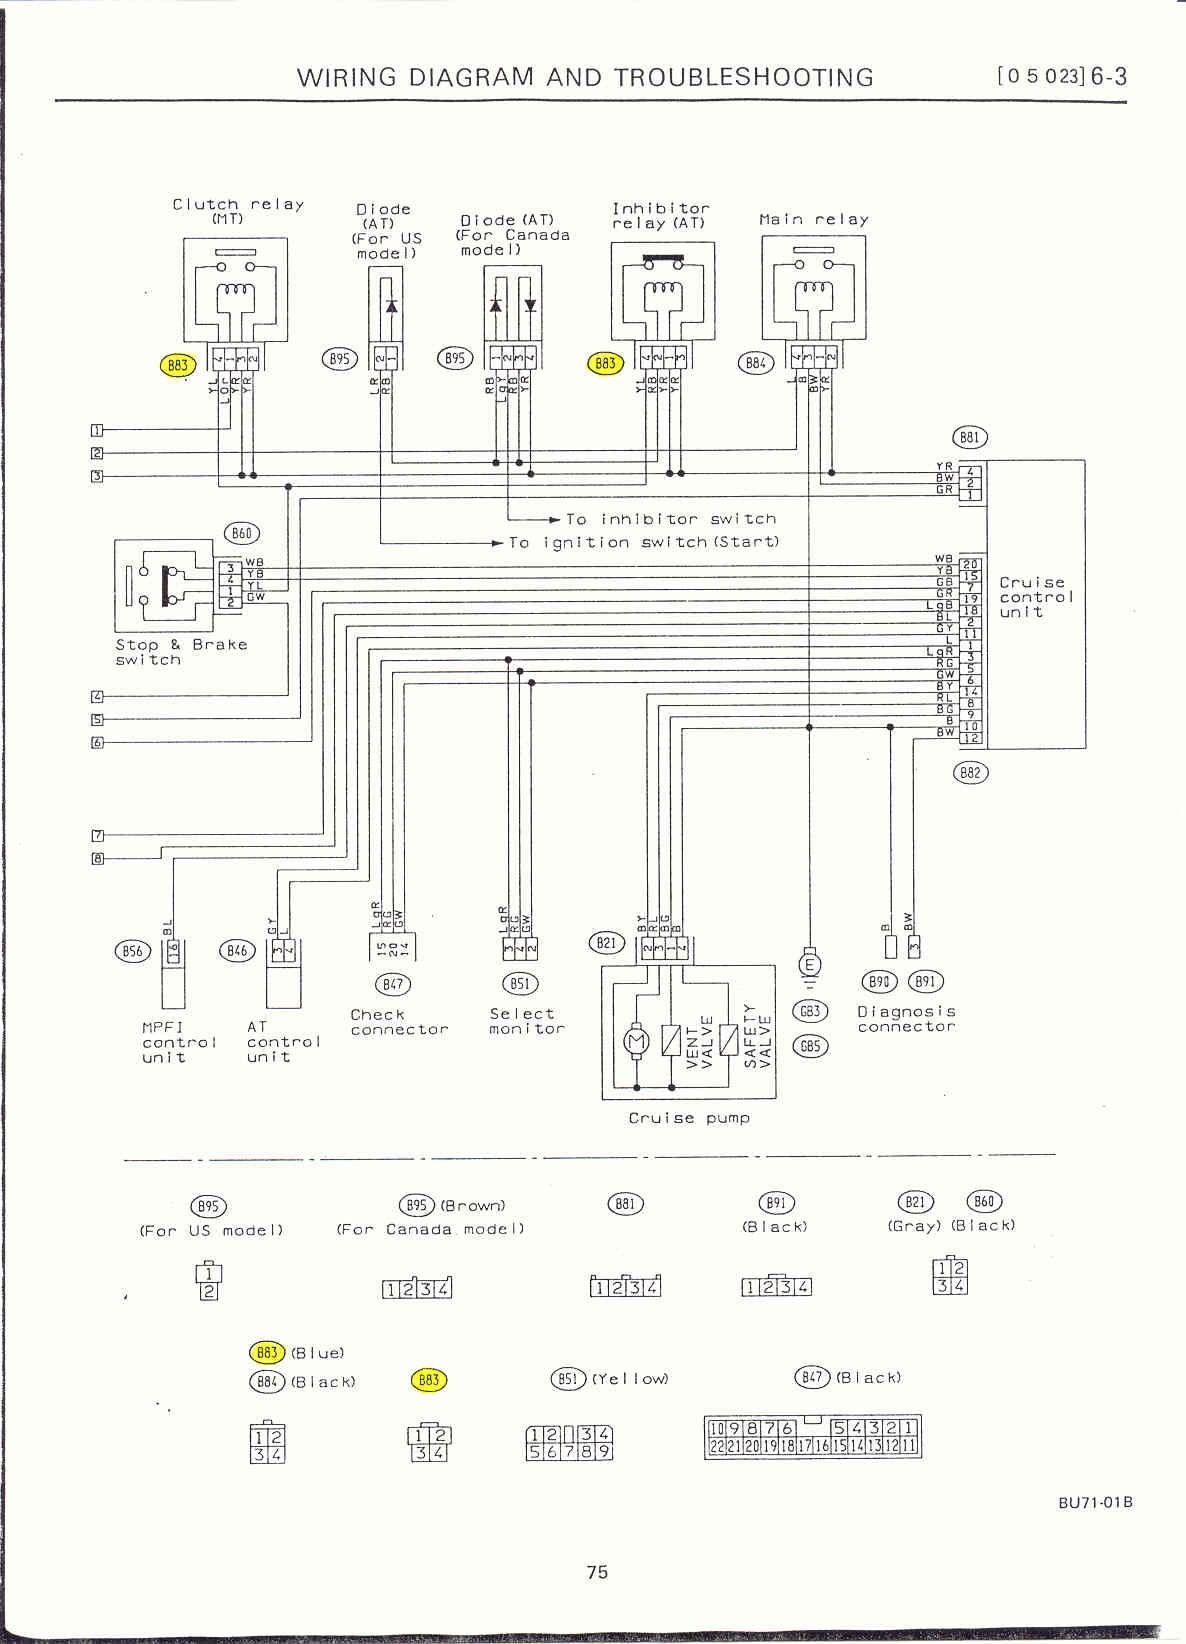 2004 Subaru Stereo Wiring Diagram. . Wiring Diagram